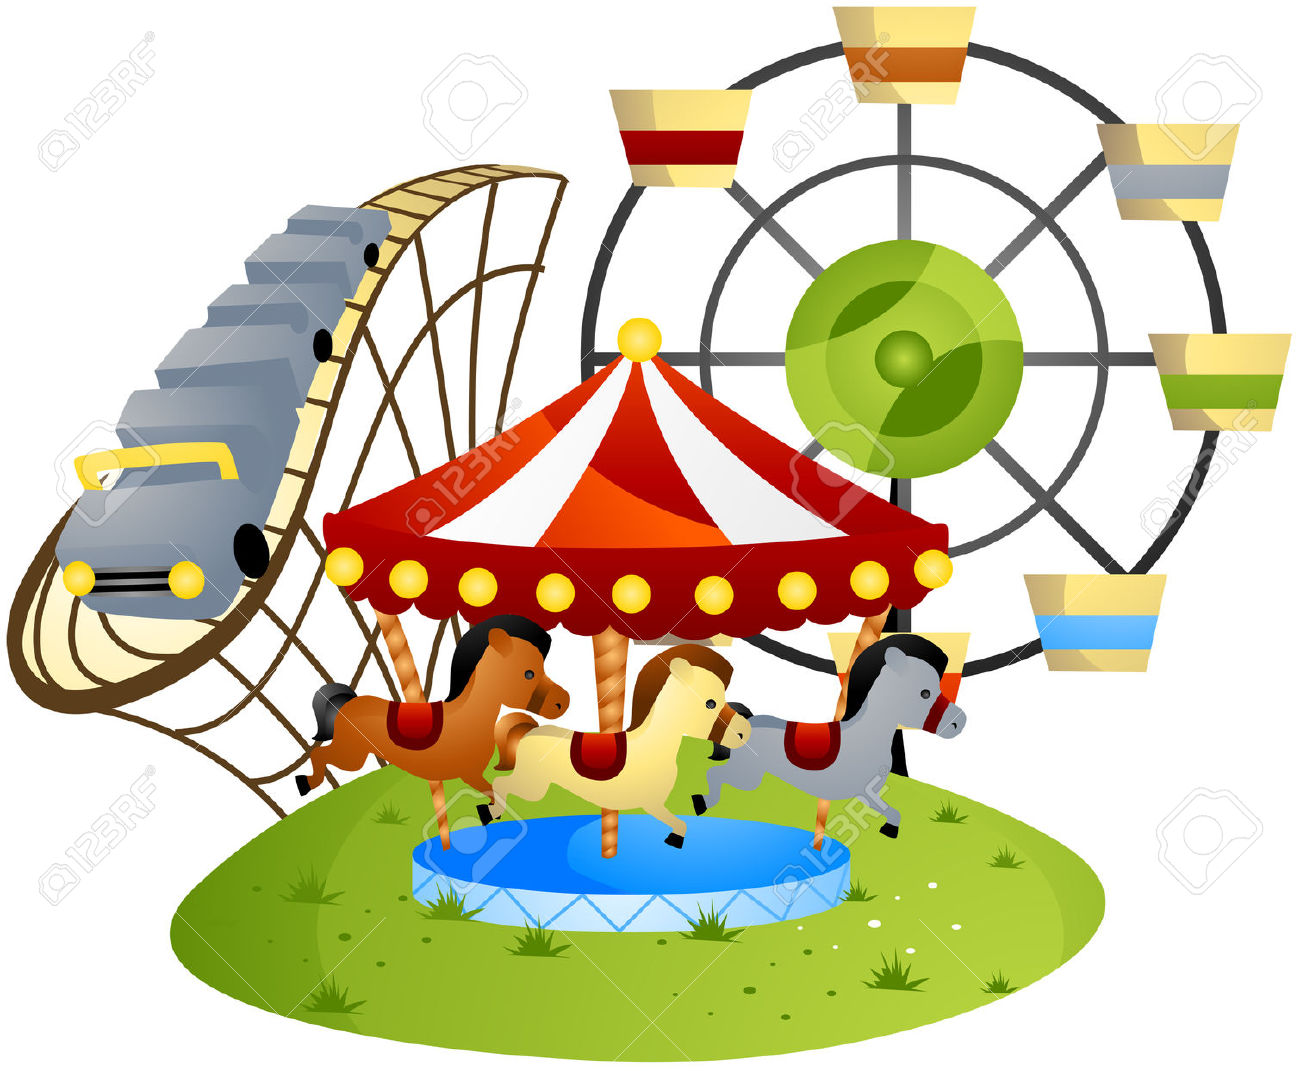 Theme park clipart banner freeuse library 55+ Amusement Park Clip Art | ClipartLook banner freeuse library